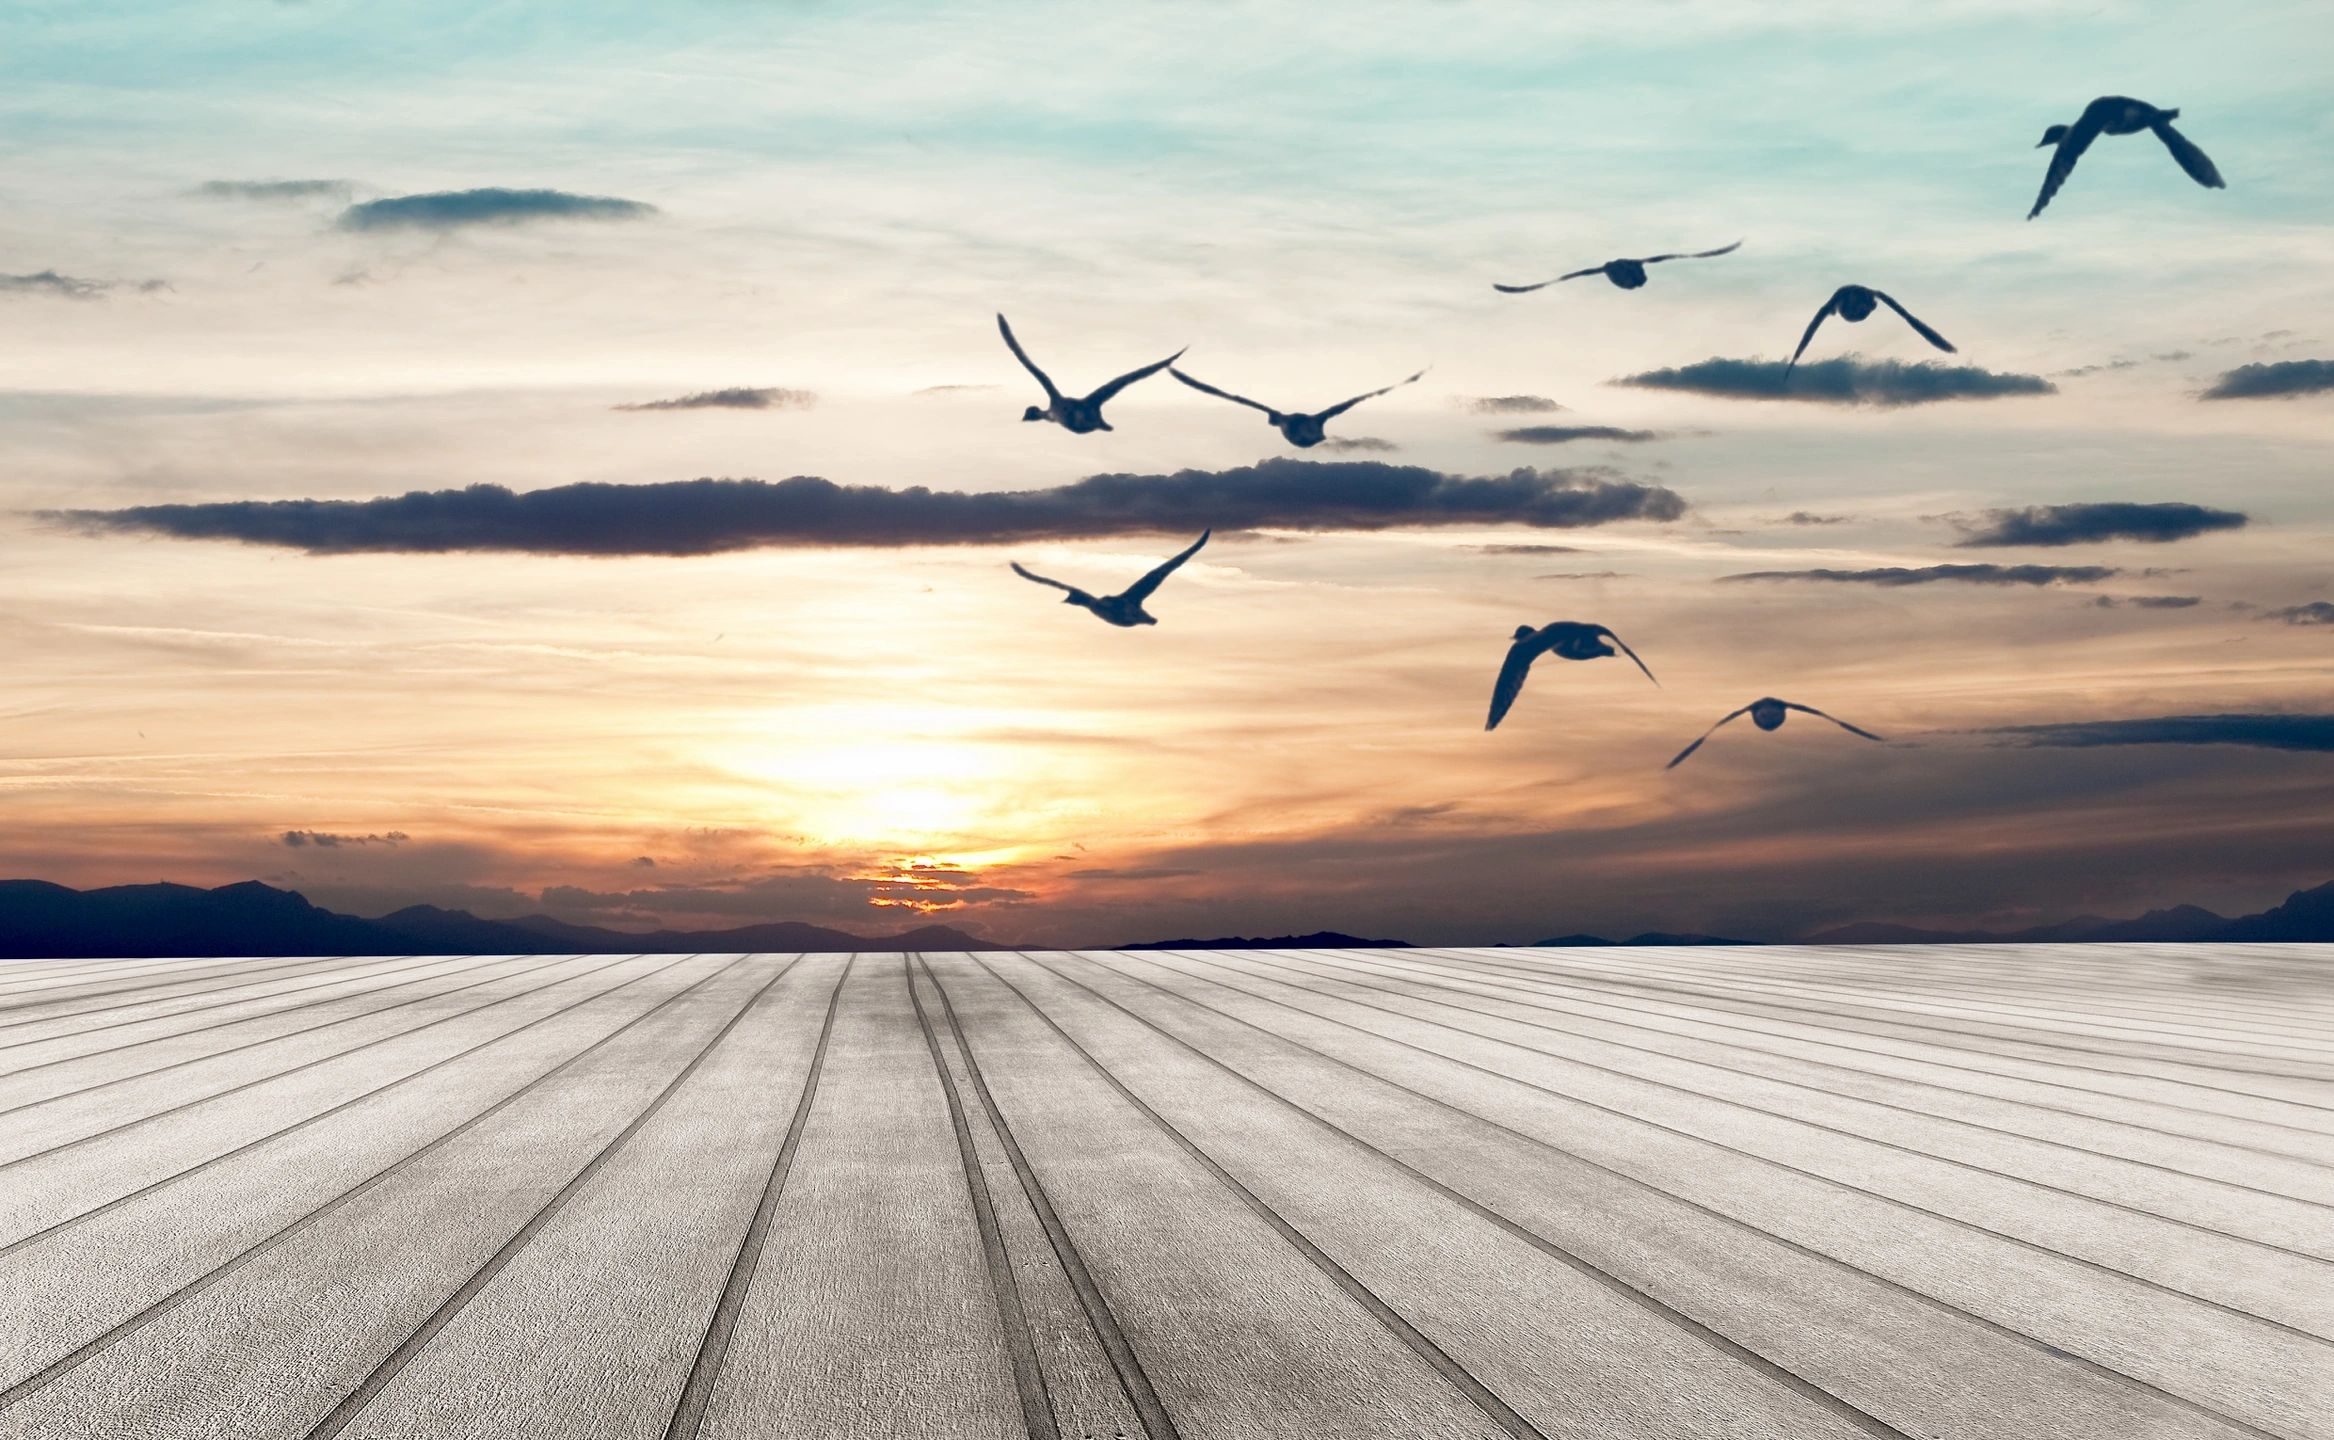 Seagulls flying into sunset deeper thoughts about life